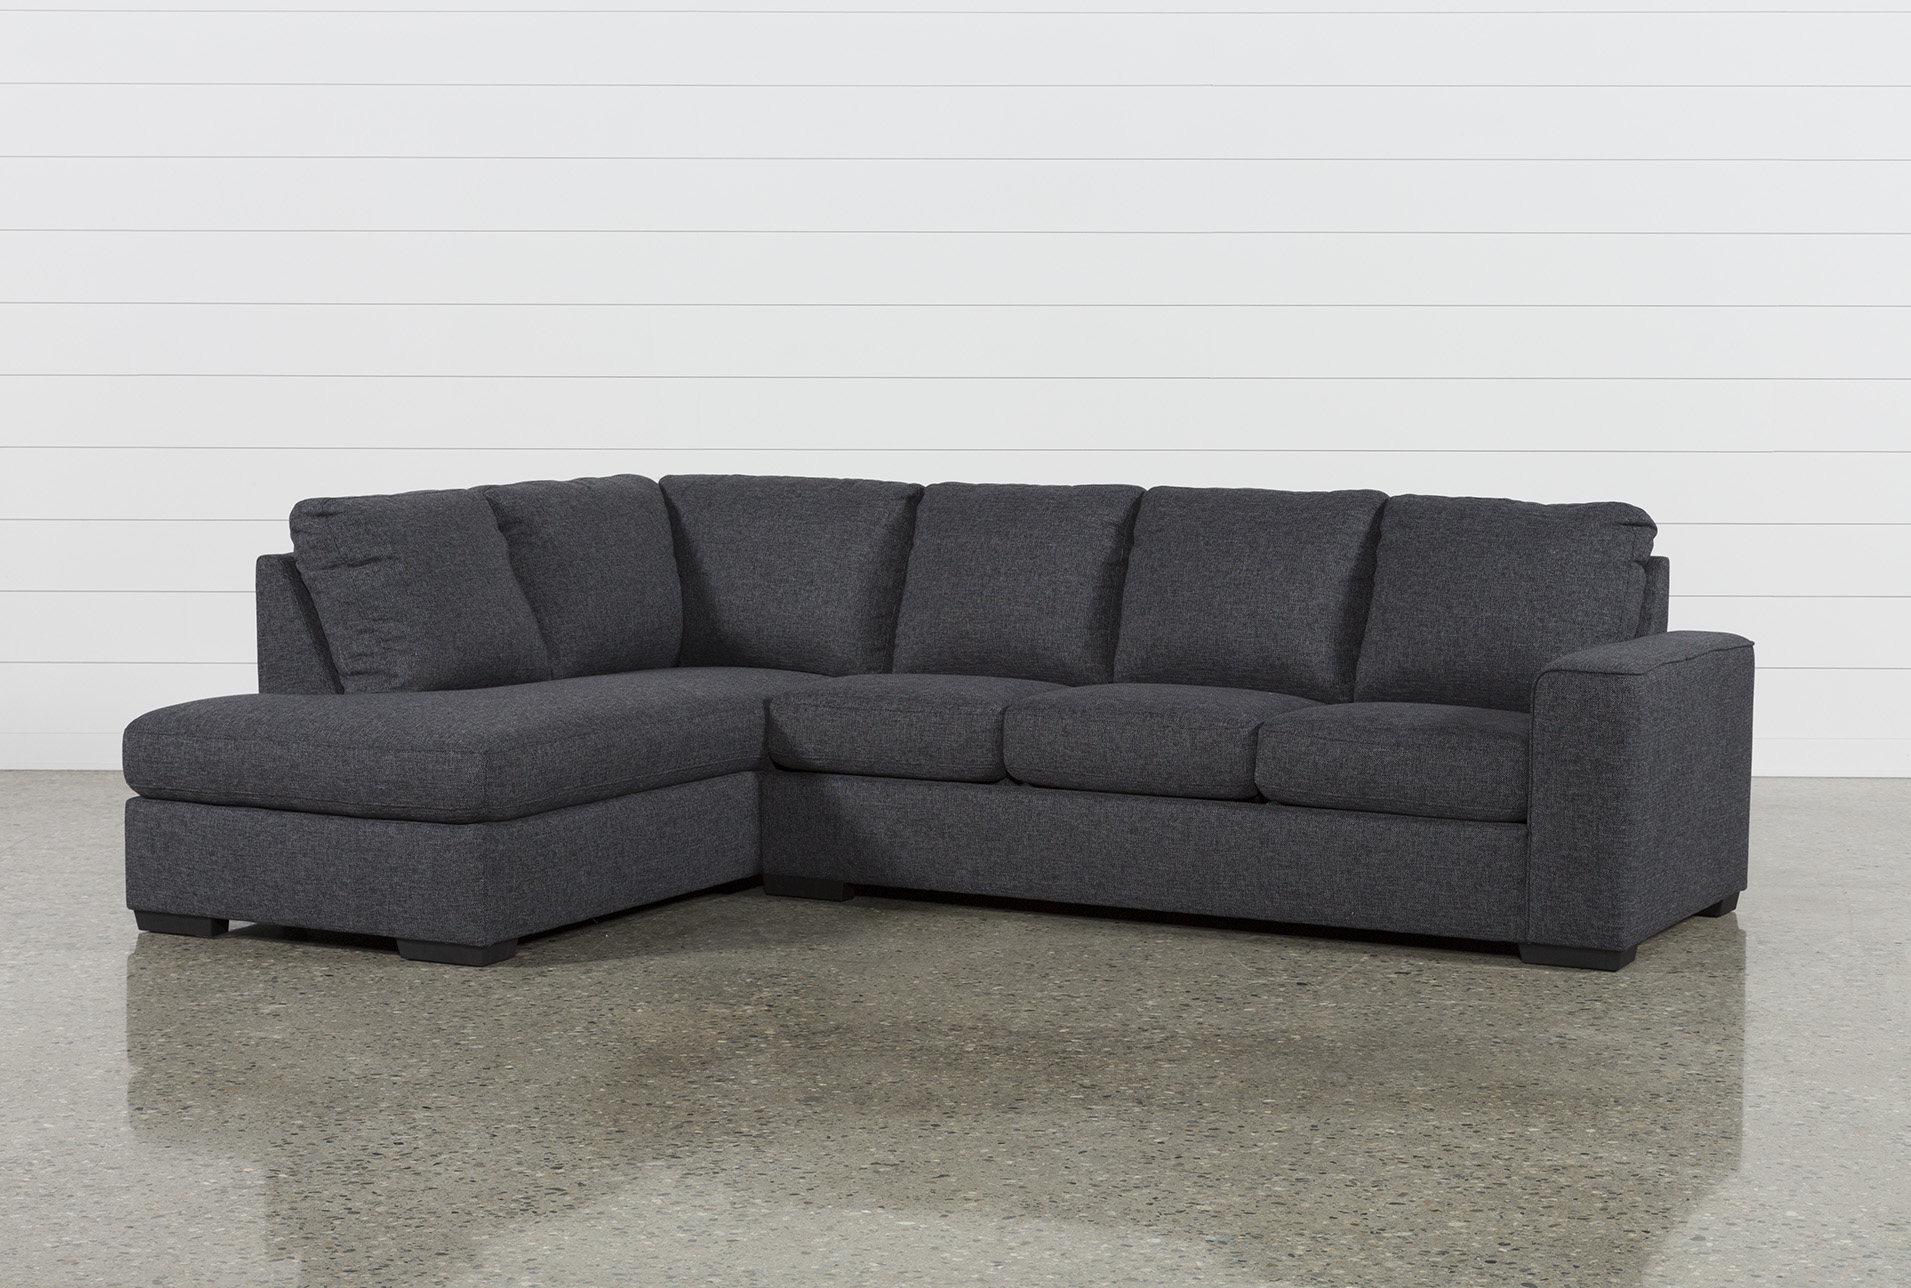 sectionals sectional sofas living spaces rh livingspaces com 3 piece sectional sofa 3 pc sectional sofa